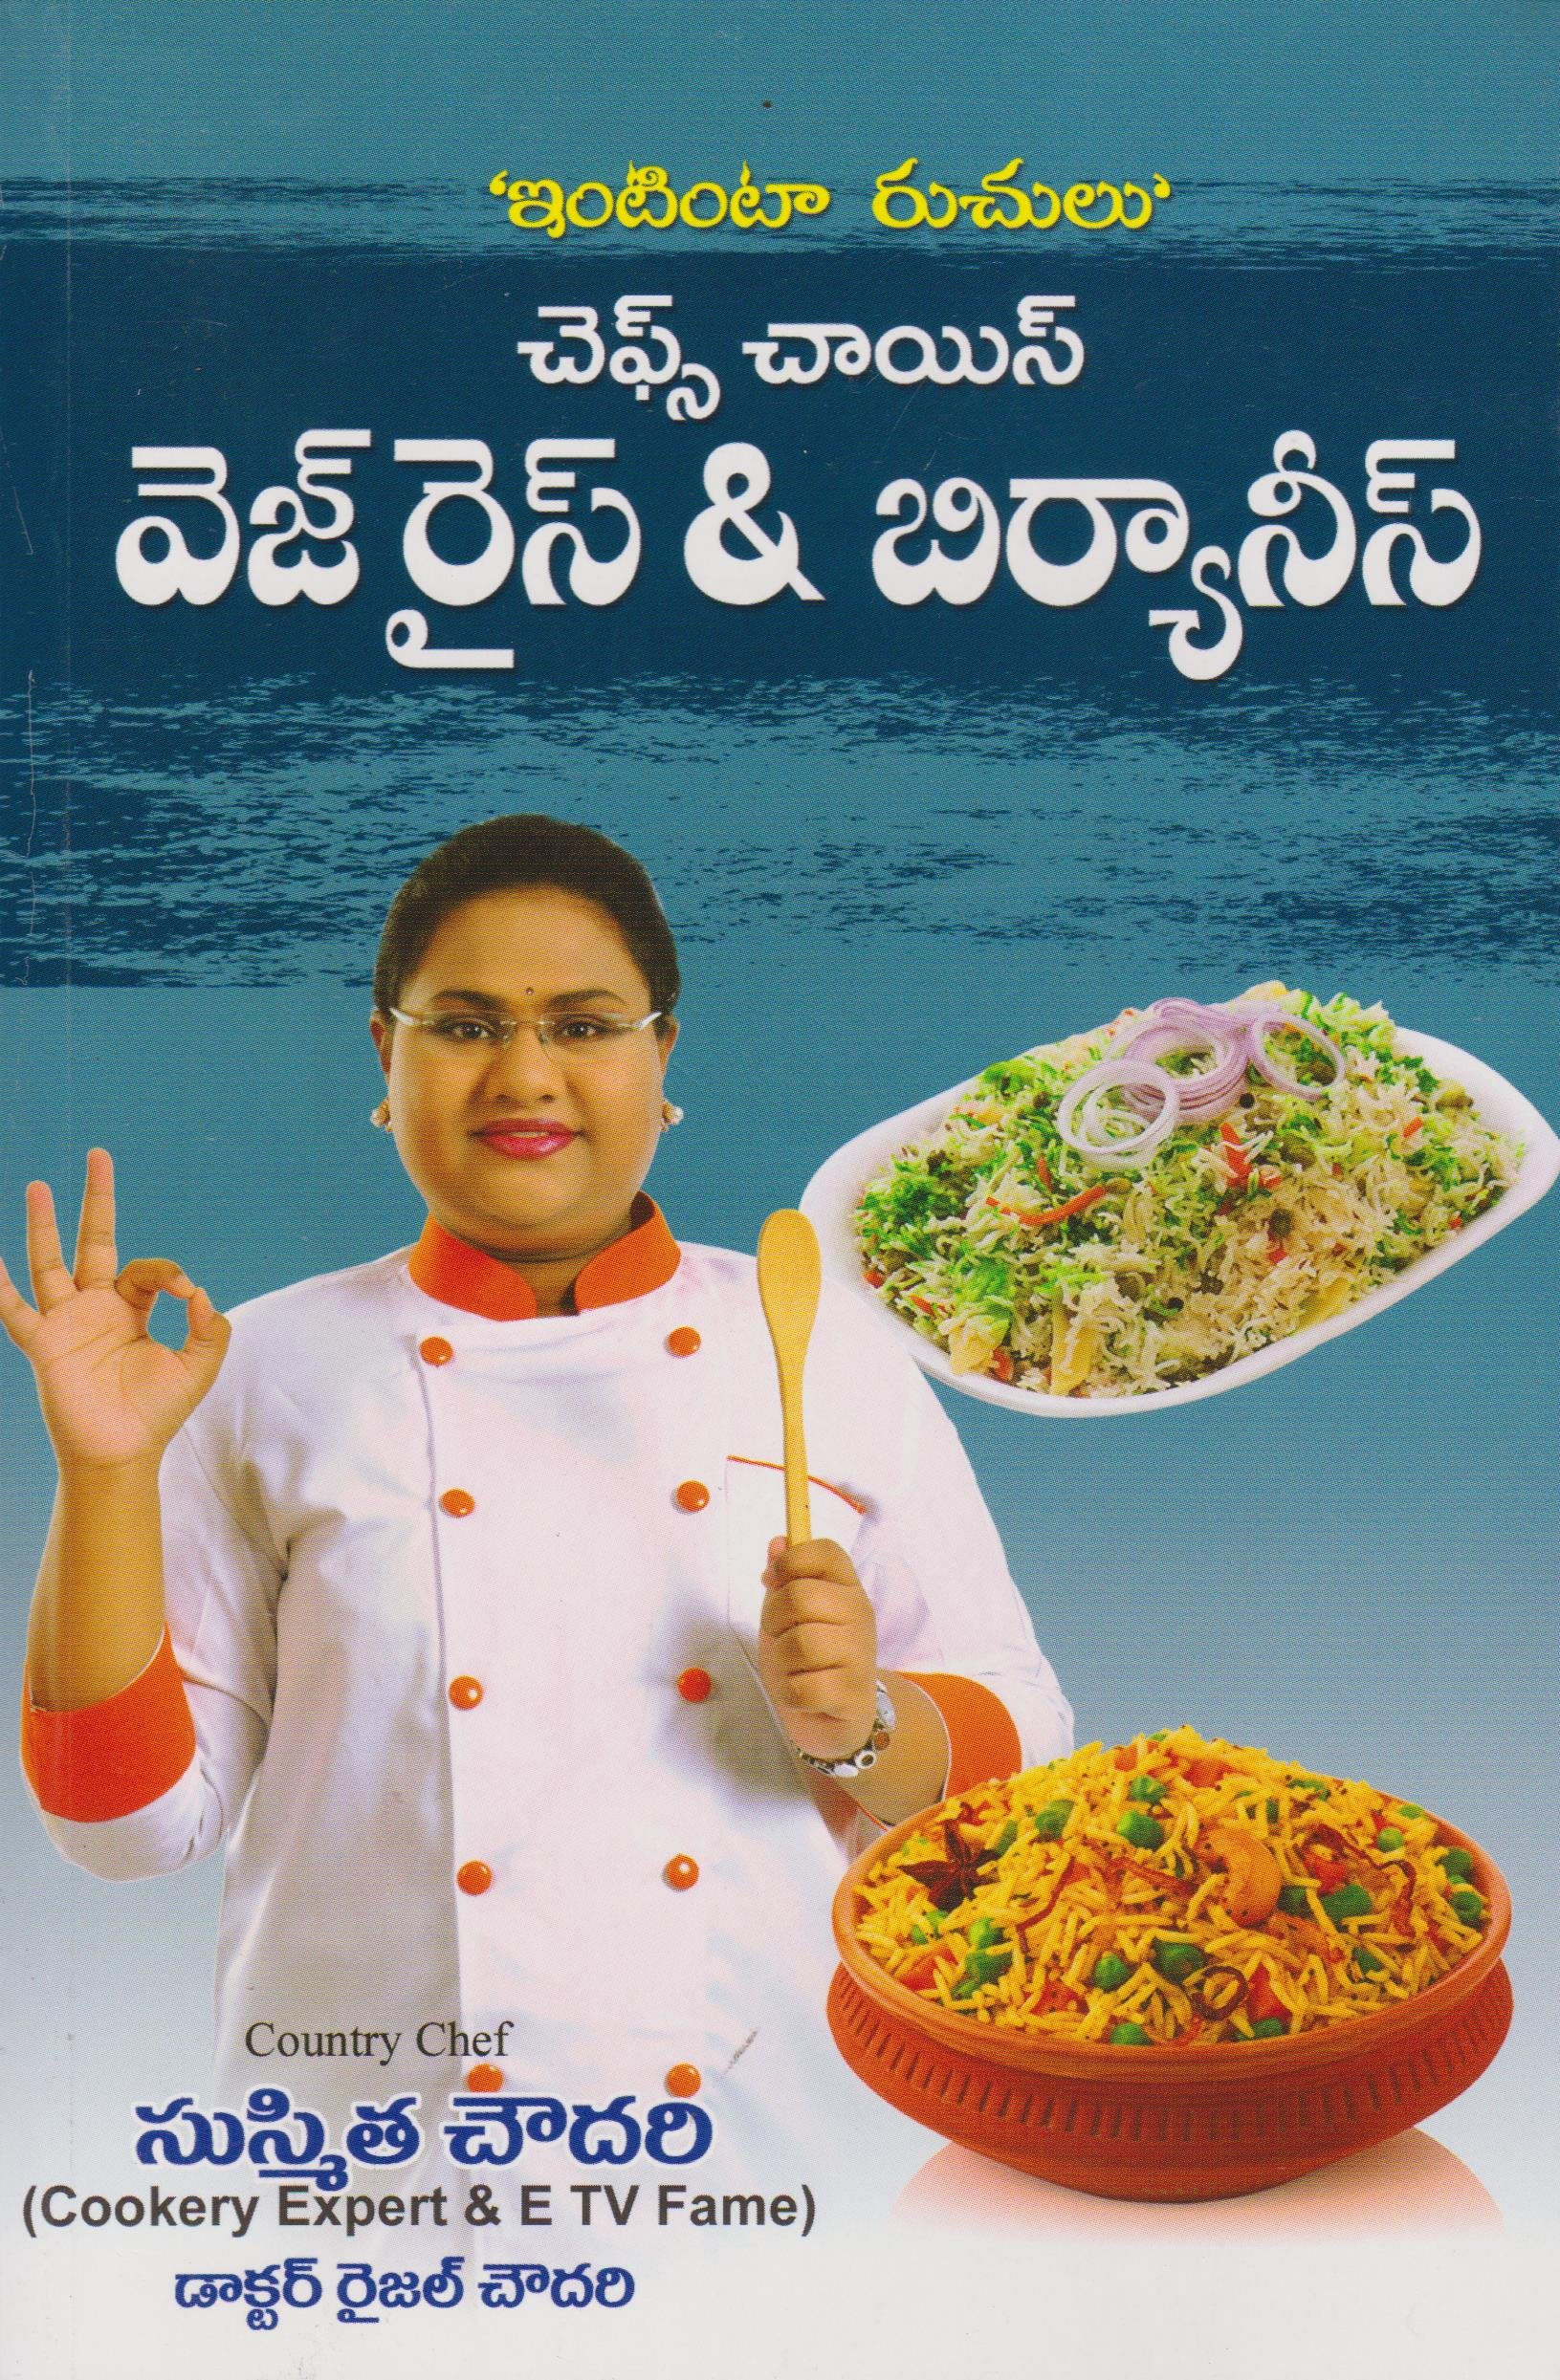 Amazon.in: Buy Chefs Chayees Veg Rice & Briyanies - Telugu Book Online at  Low Prices in India | Chefs Chayees Veg Rice & Briyanies - Telugu Reviews &  Ratings